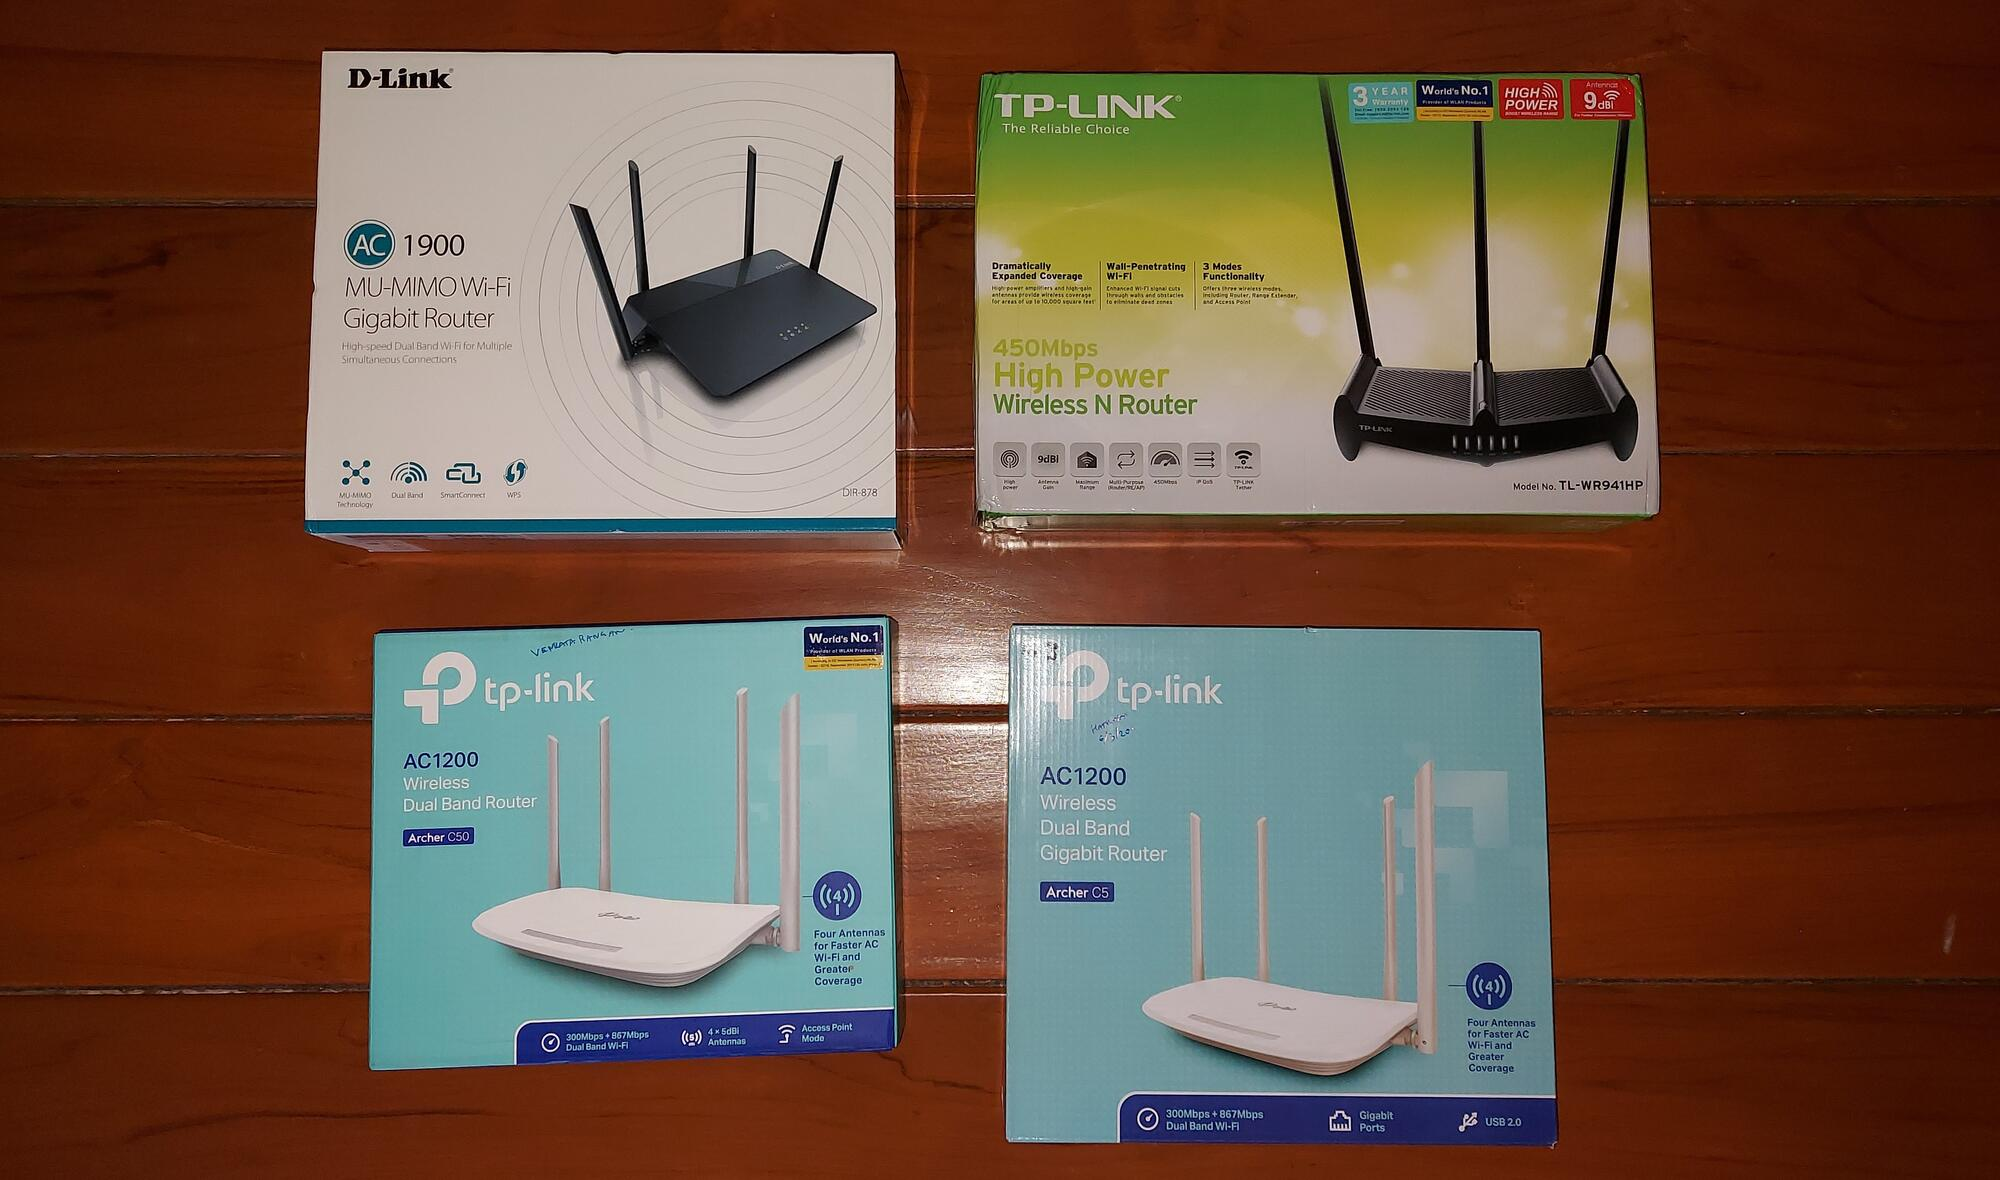 Wi-Fi Router Boxes